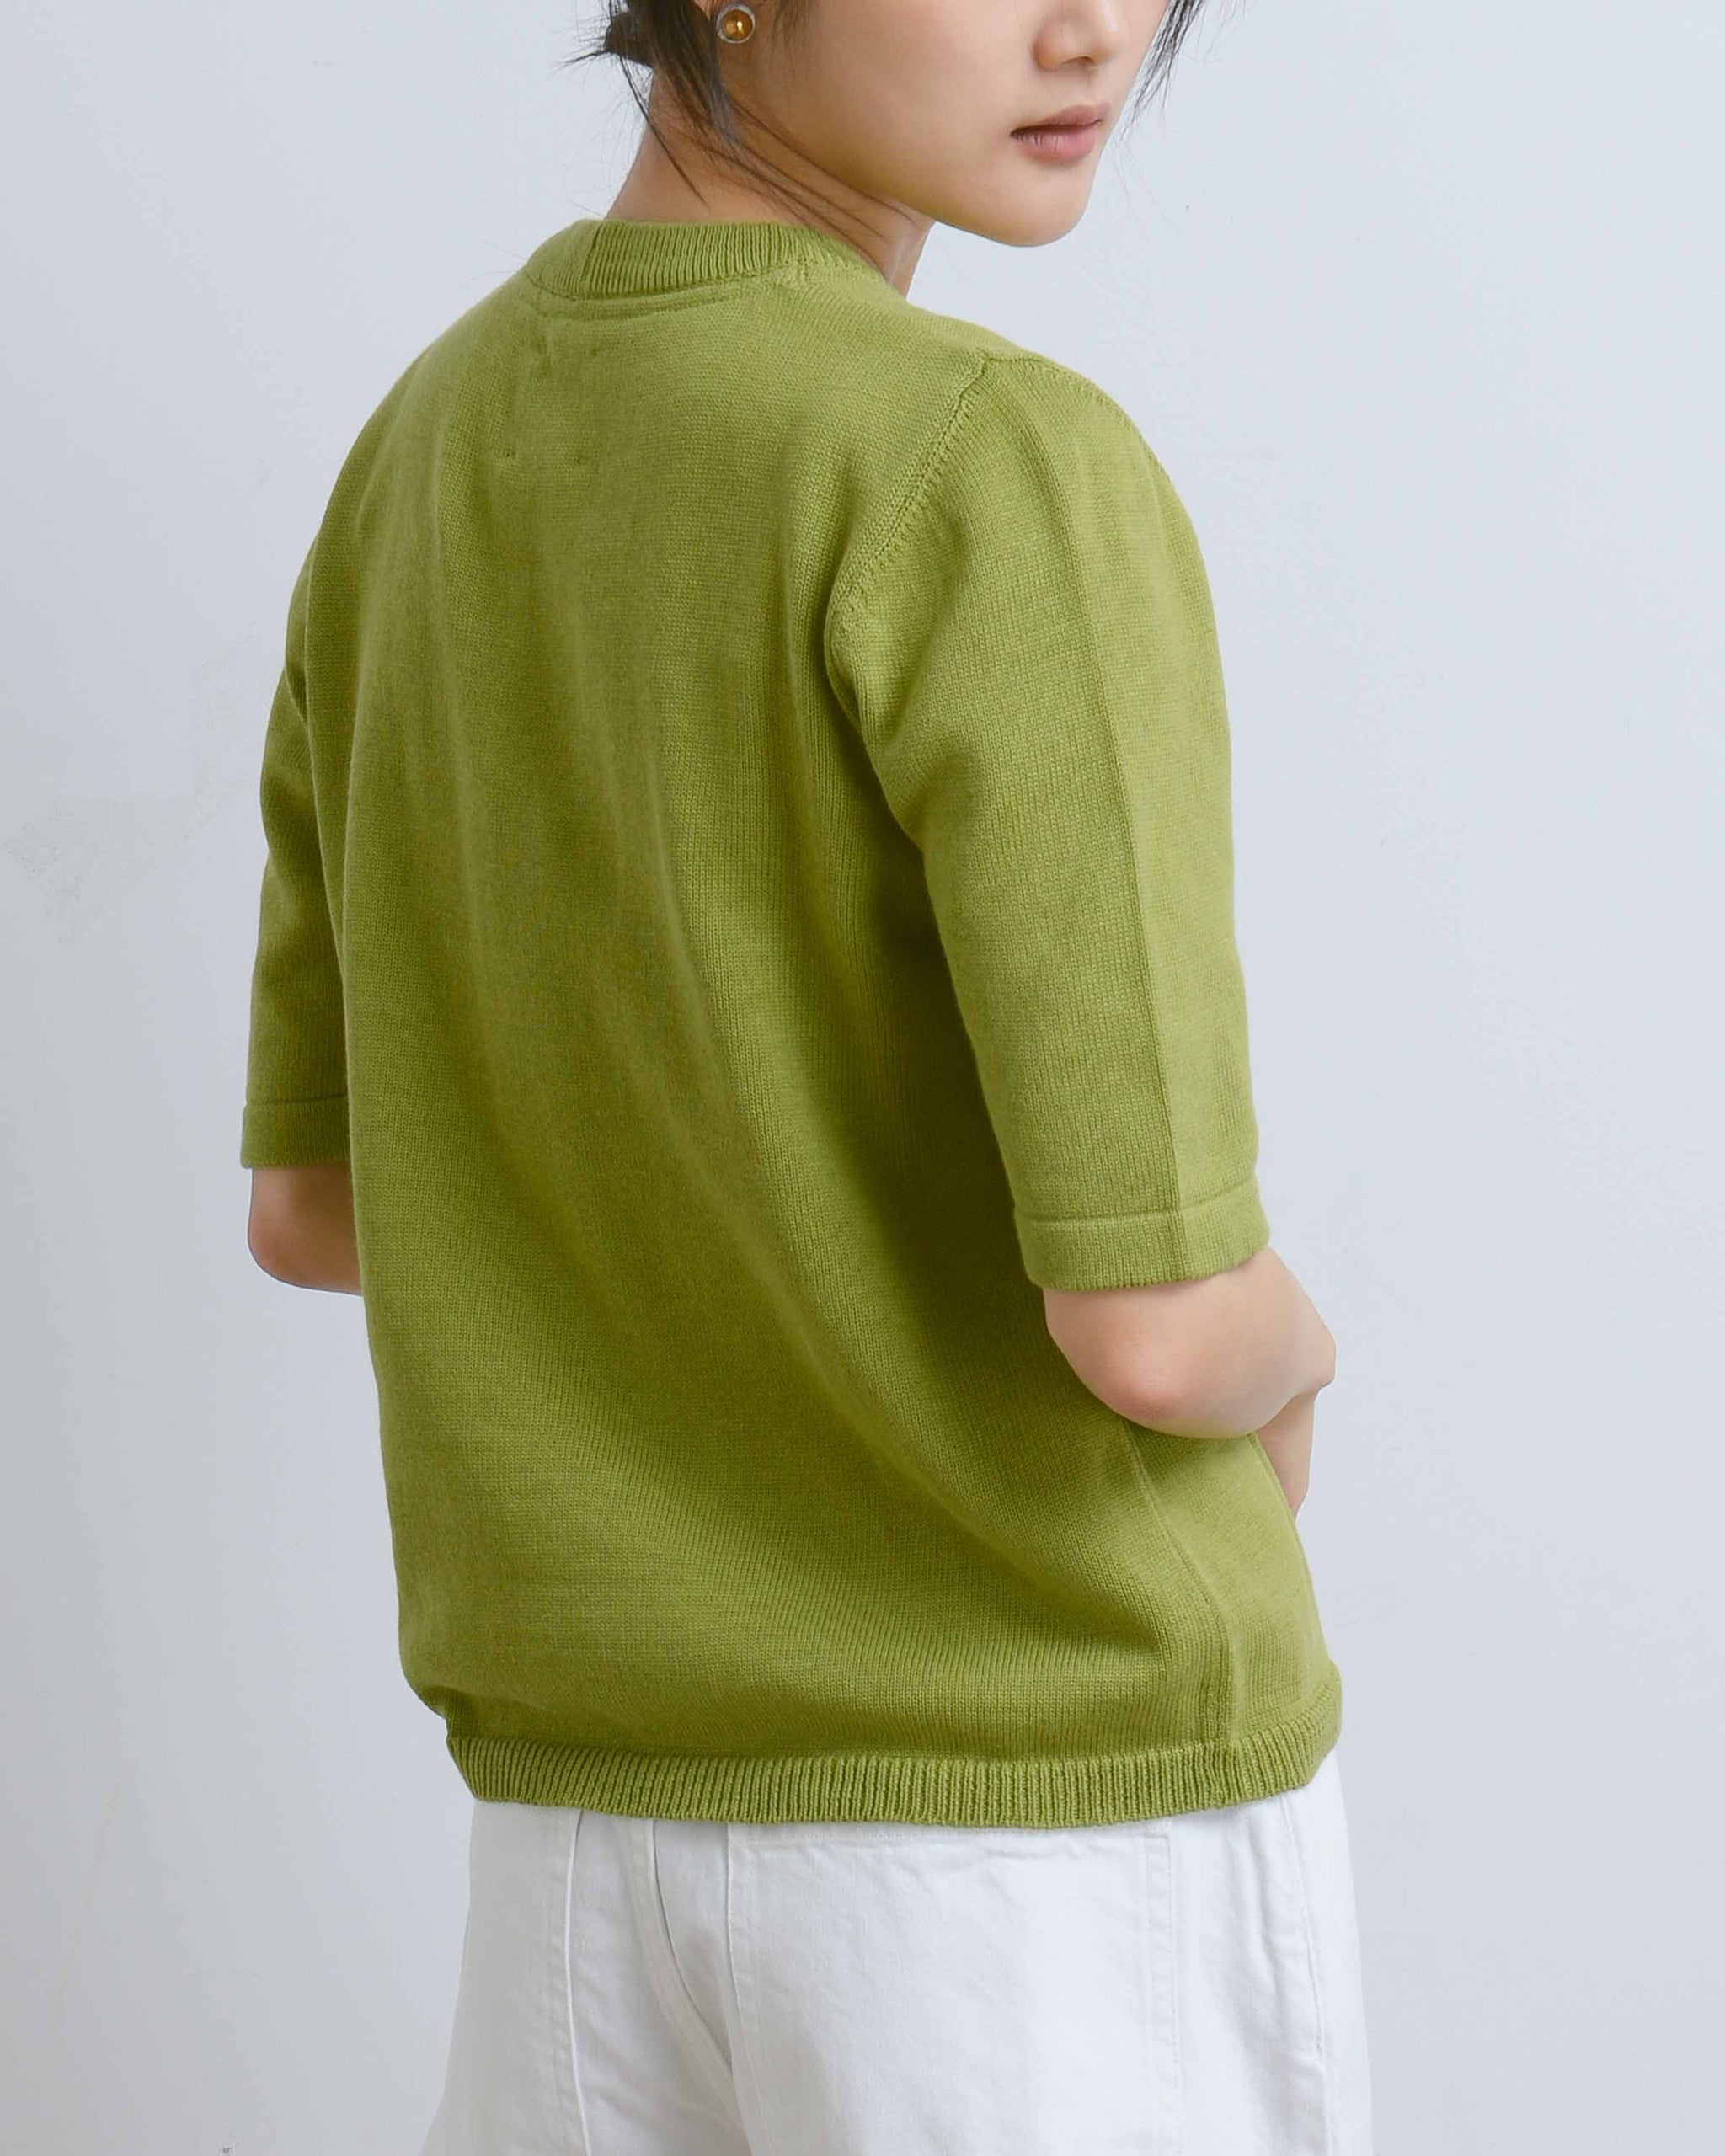 Green Knitted Tee